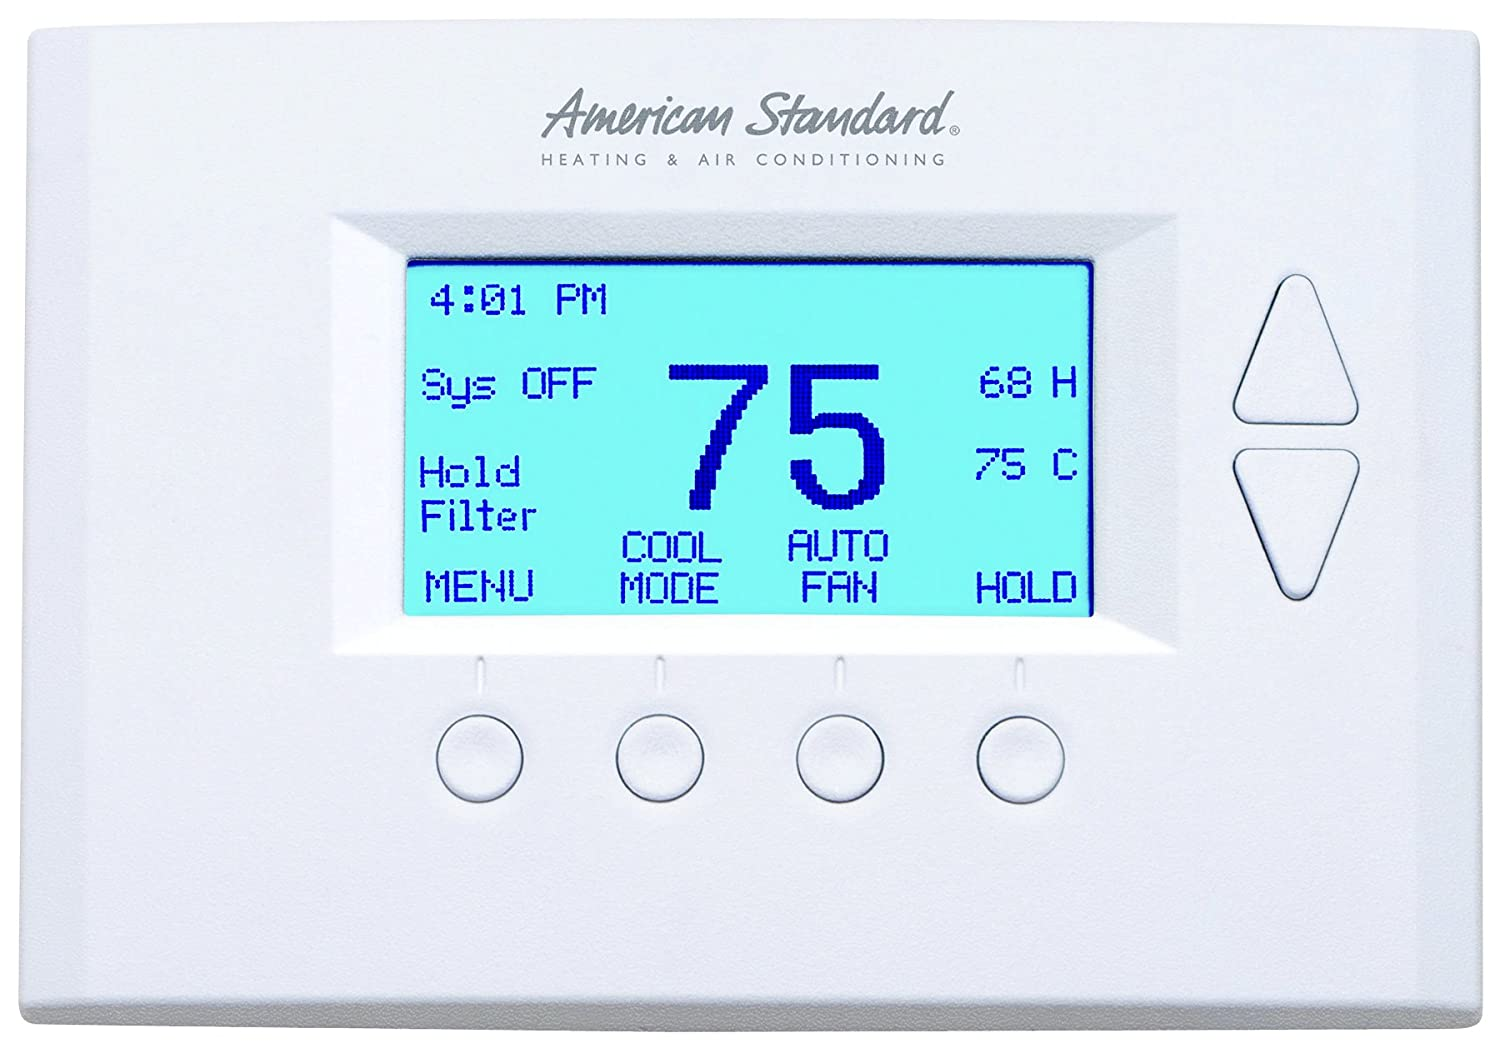 nexia home intelligence azemt500 american standard energy management rh amazon com American Standard Thermostat Reset American Standard Thermostat Problems